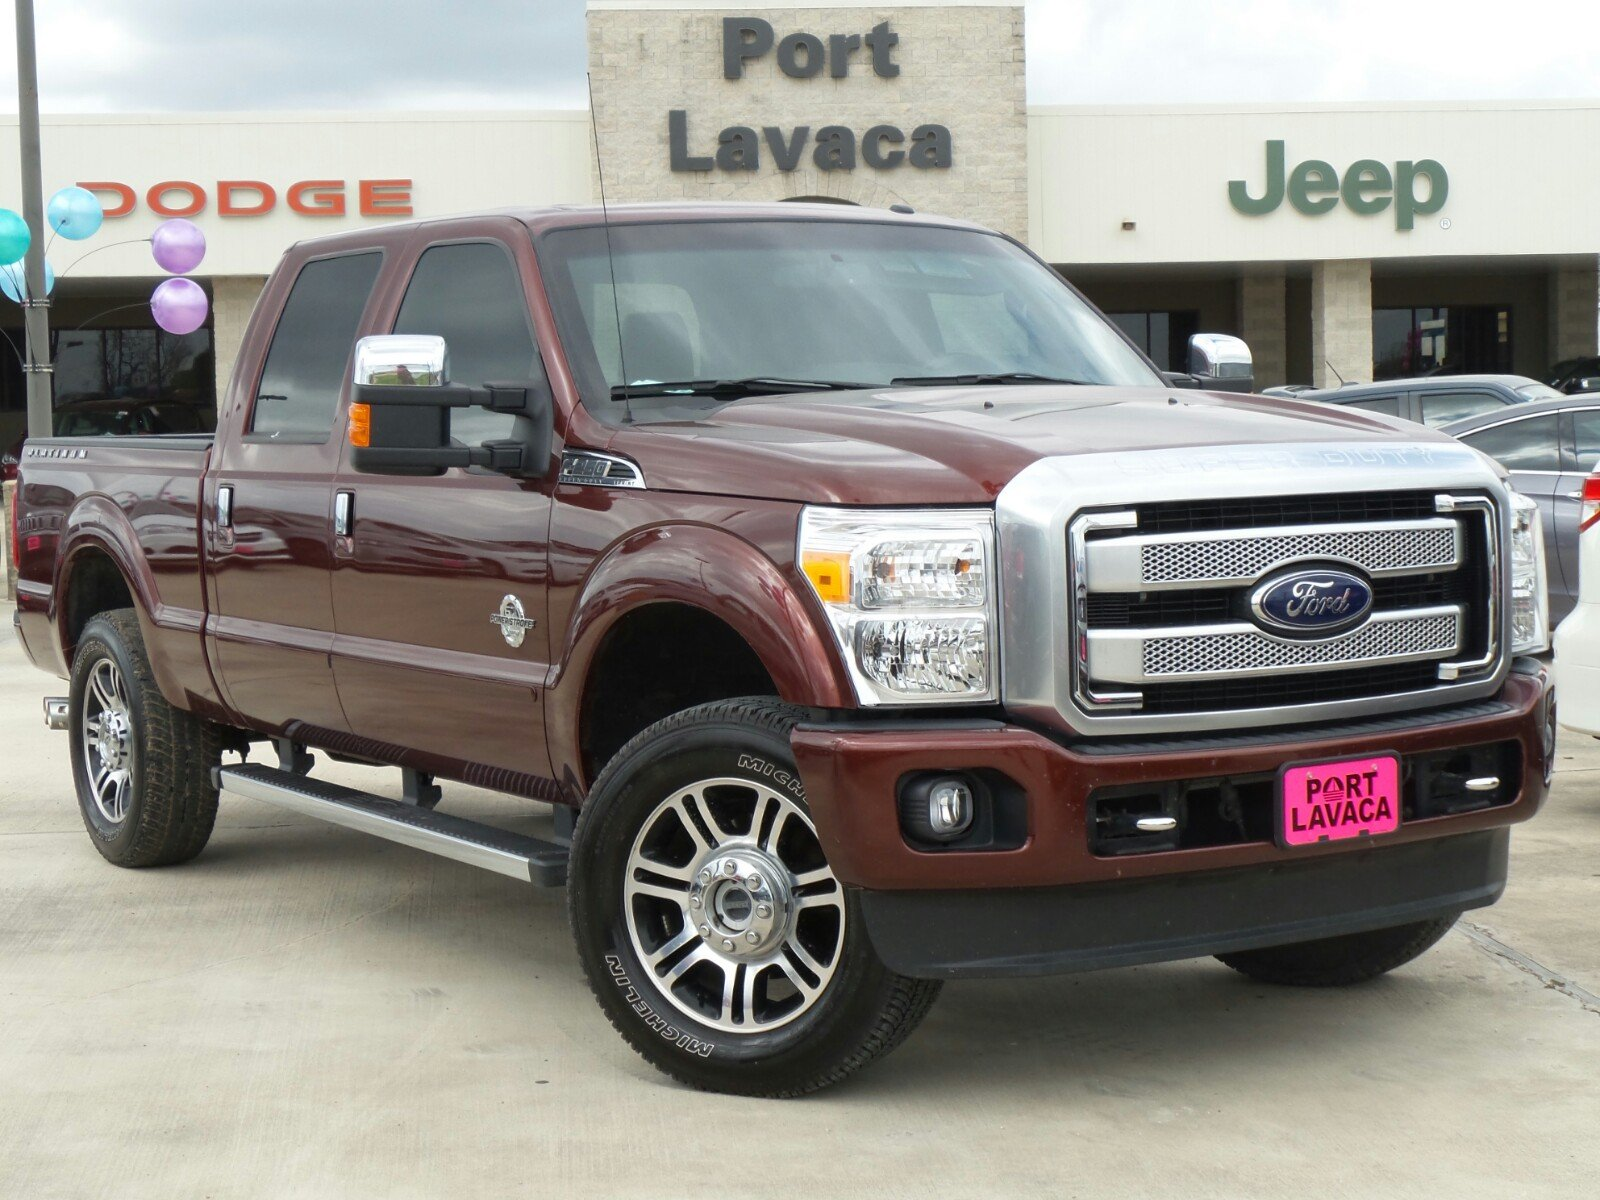 pre owned 2016 ford super duty f 250 srw platinum crew cab pickup in port lavaca gea26969. Black Bedroom Furniture Sets. Home Design Ideas